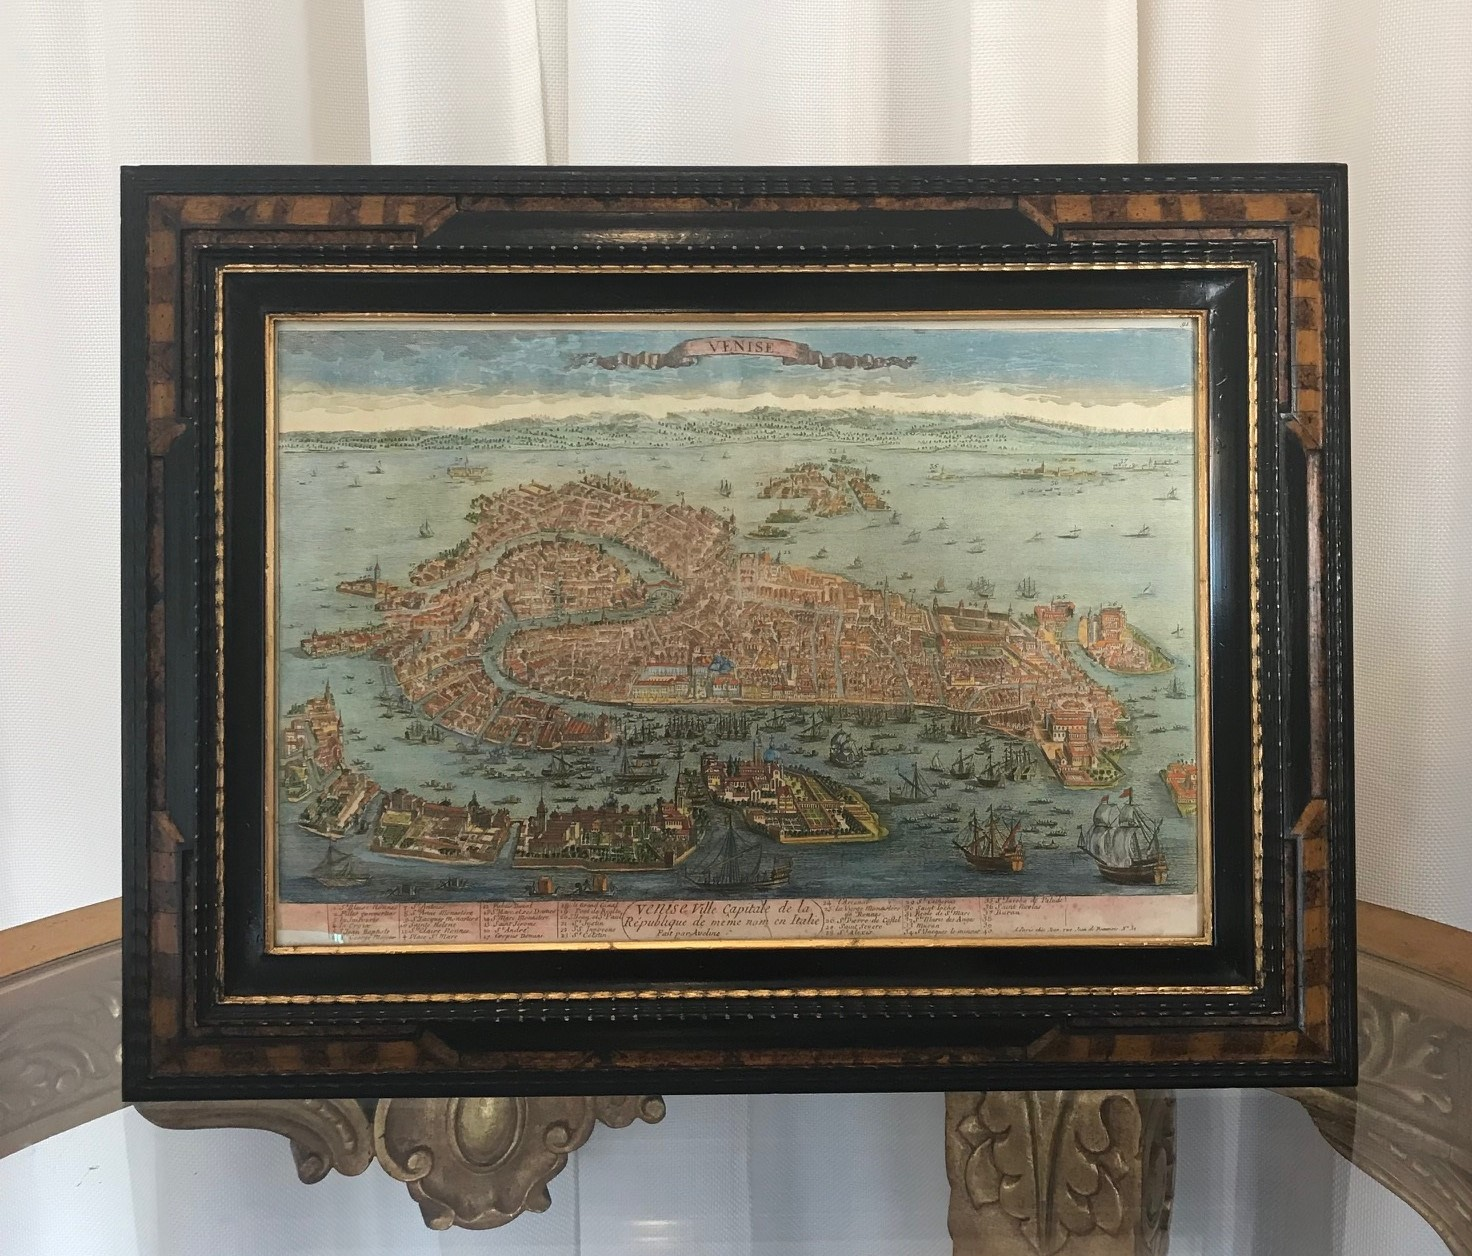 map-of-venise-framed-after-restoration-aa.jpg